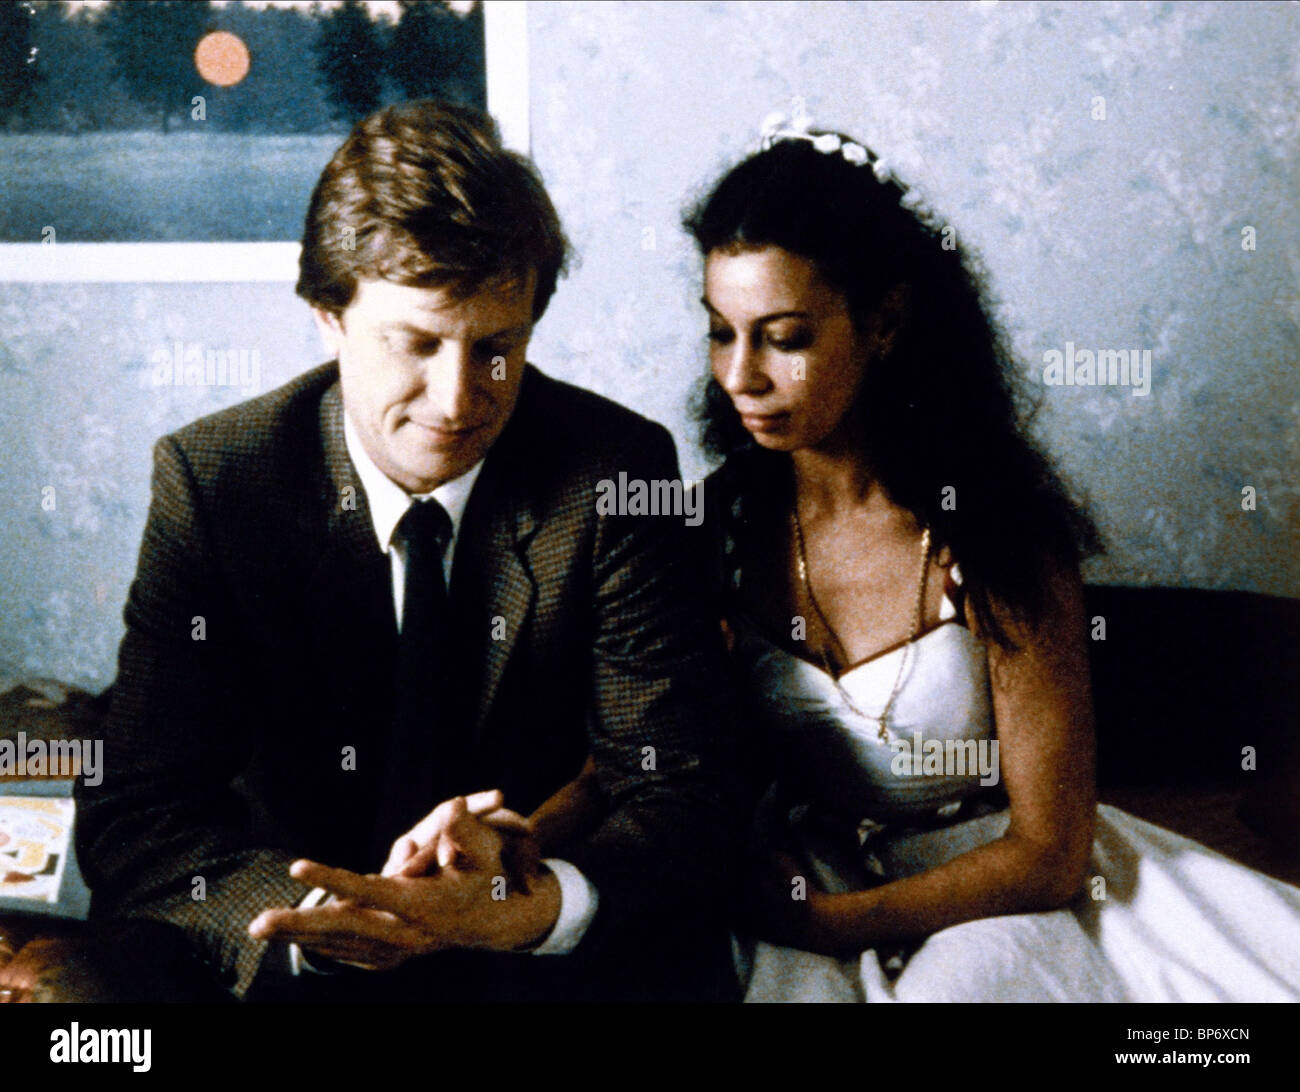 ANDRE DUSSOLLIER & BEATRICE ROMAND LE BEAU MARIAGE; A GOOD MARRIAGE (1982) - Stock Image